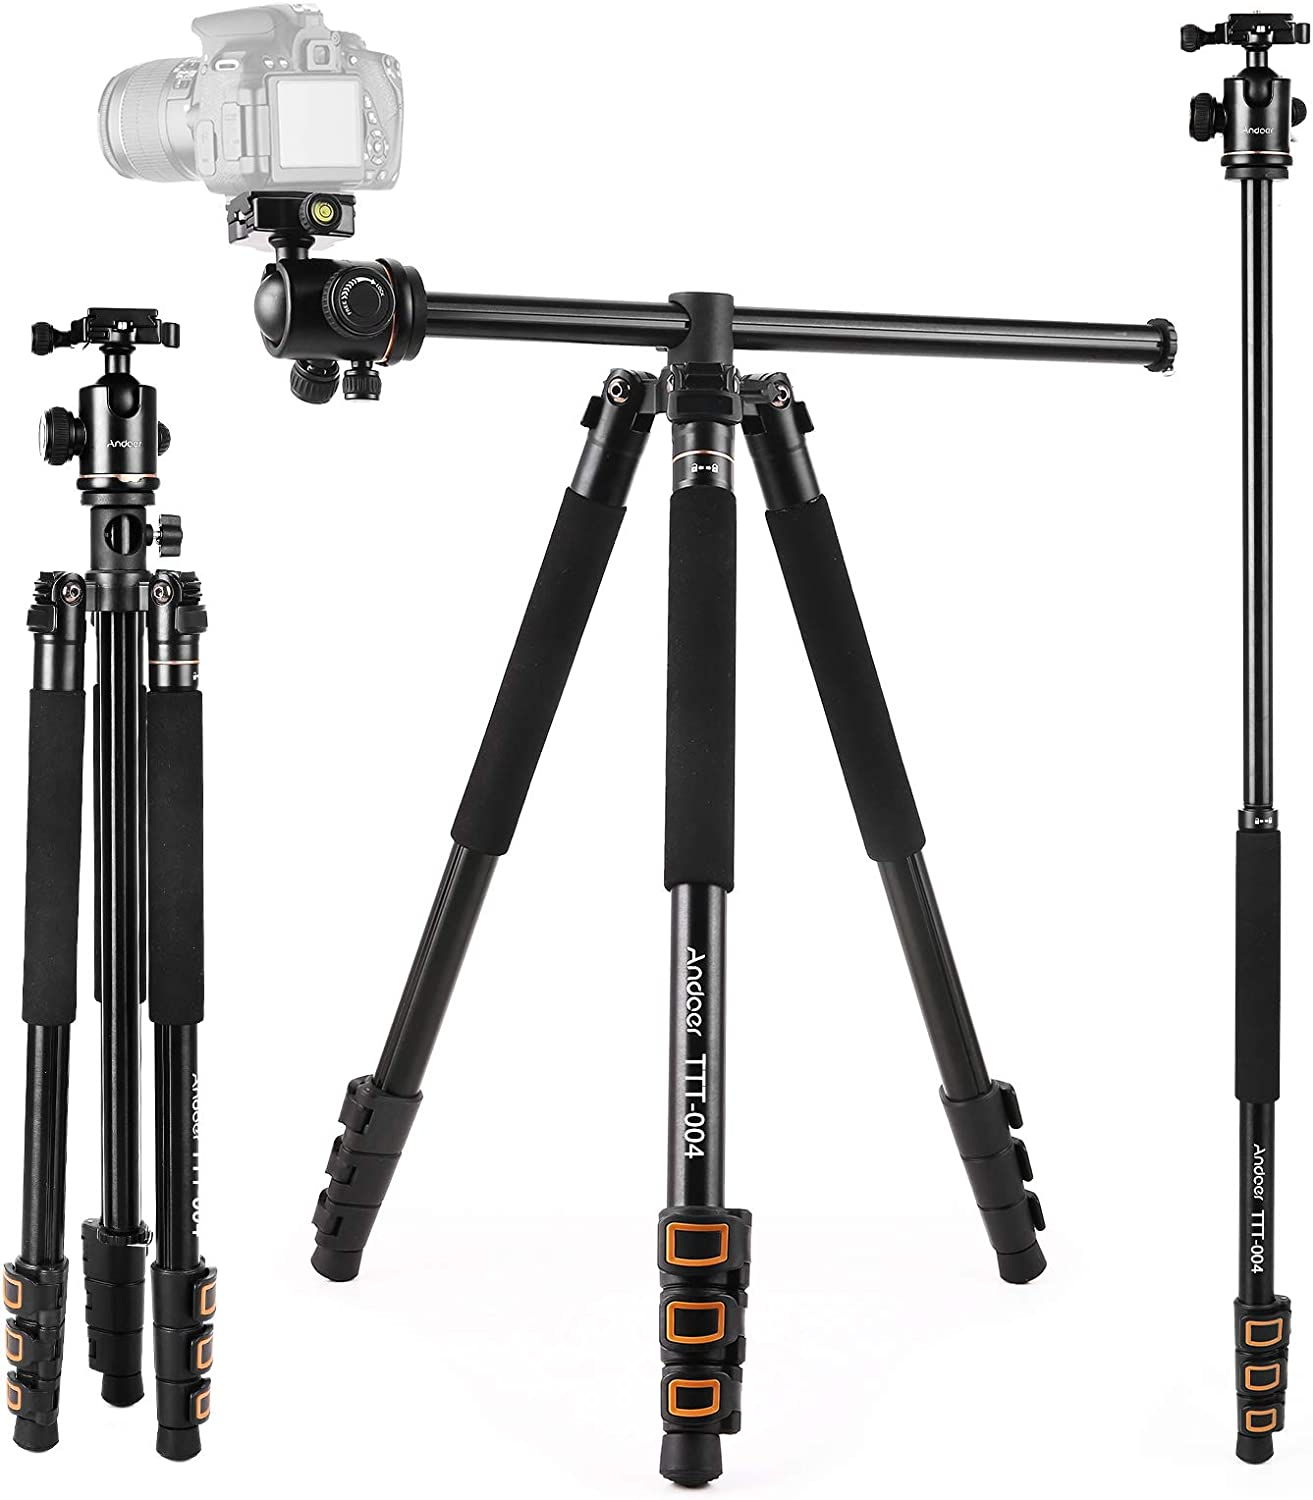 Andoer Camera Tripod 78.7 inch Center 2-in-1 Column Free Shipping New Some reservation with